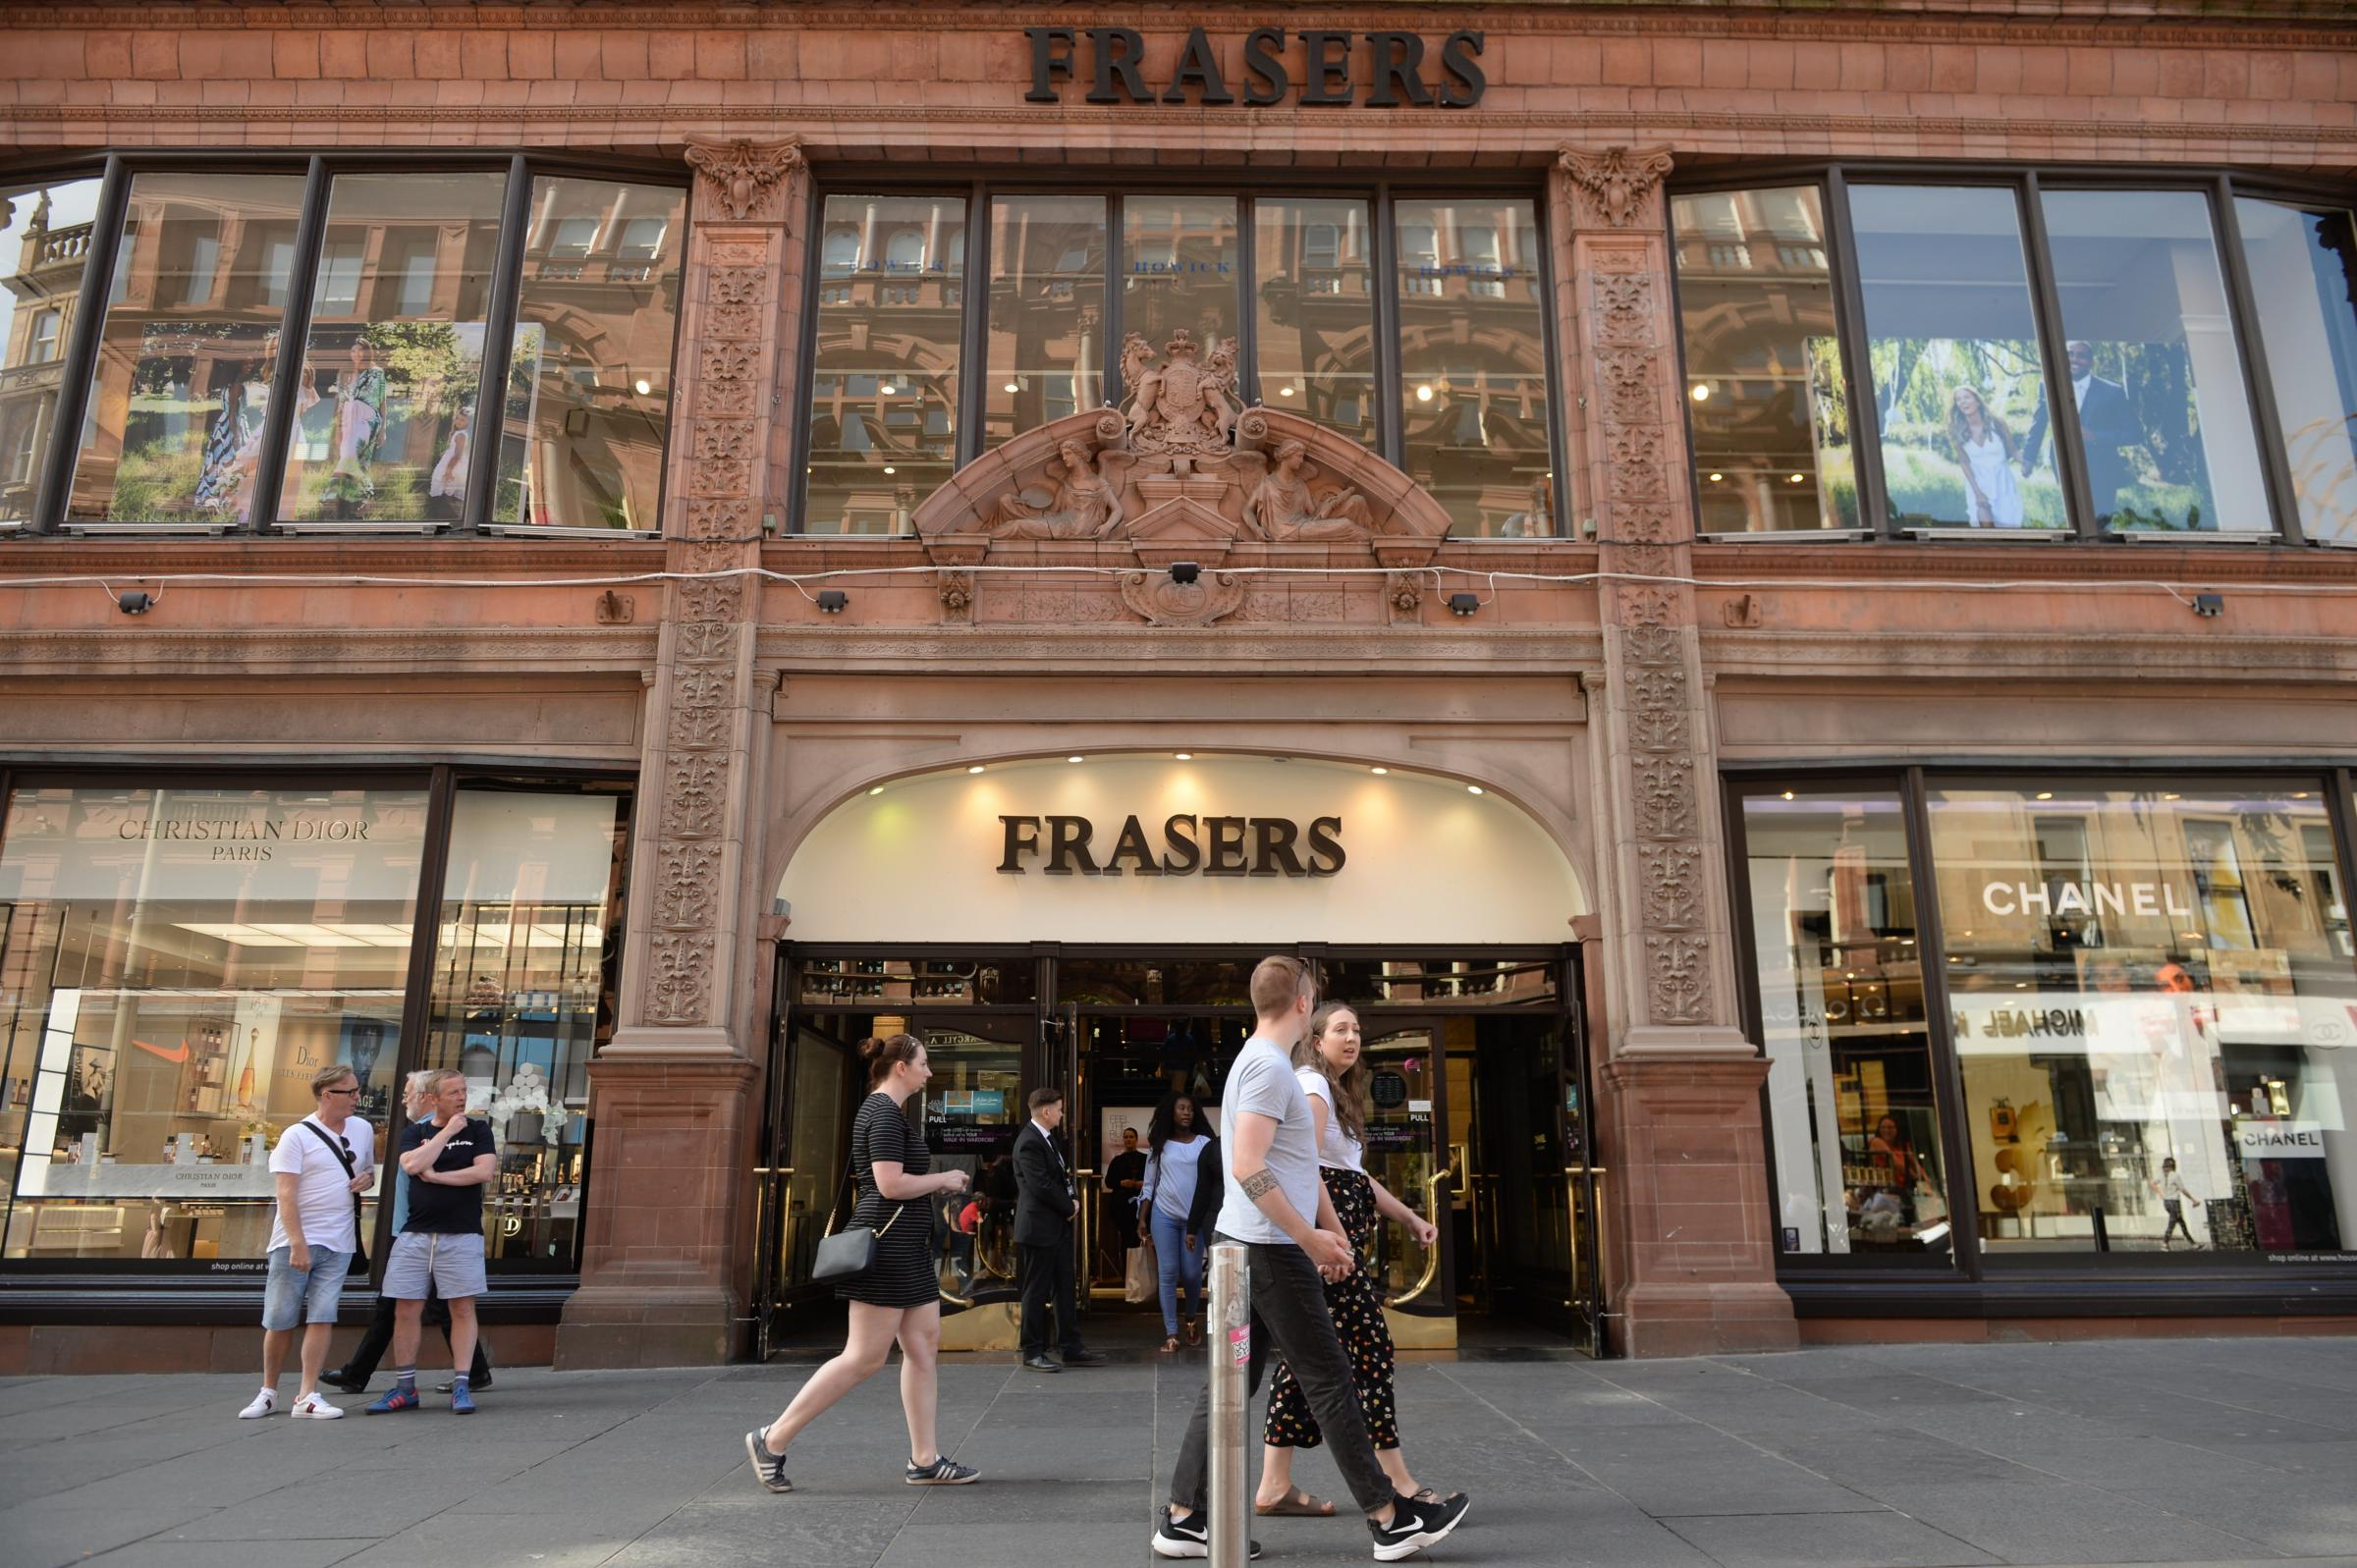 Frasers' flagship store on Buchanan Street has been on the site for 170 years. Picture: Kirsty Anderson